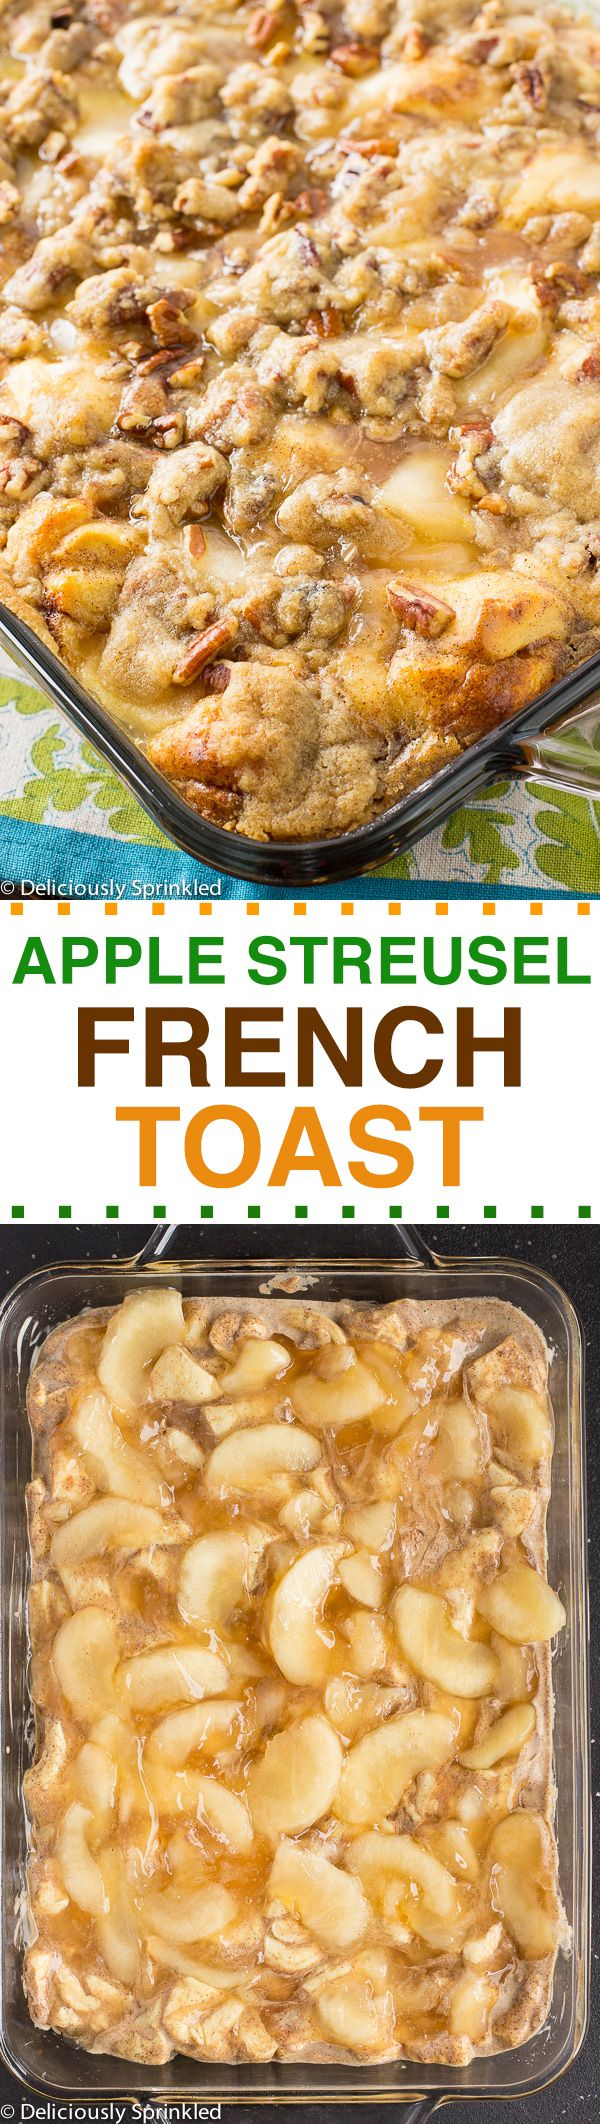 Apple Streusel French Toast Bake: